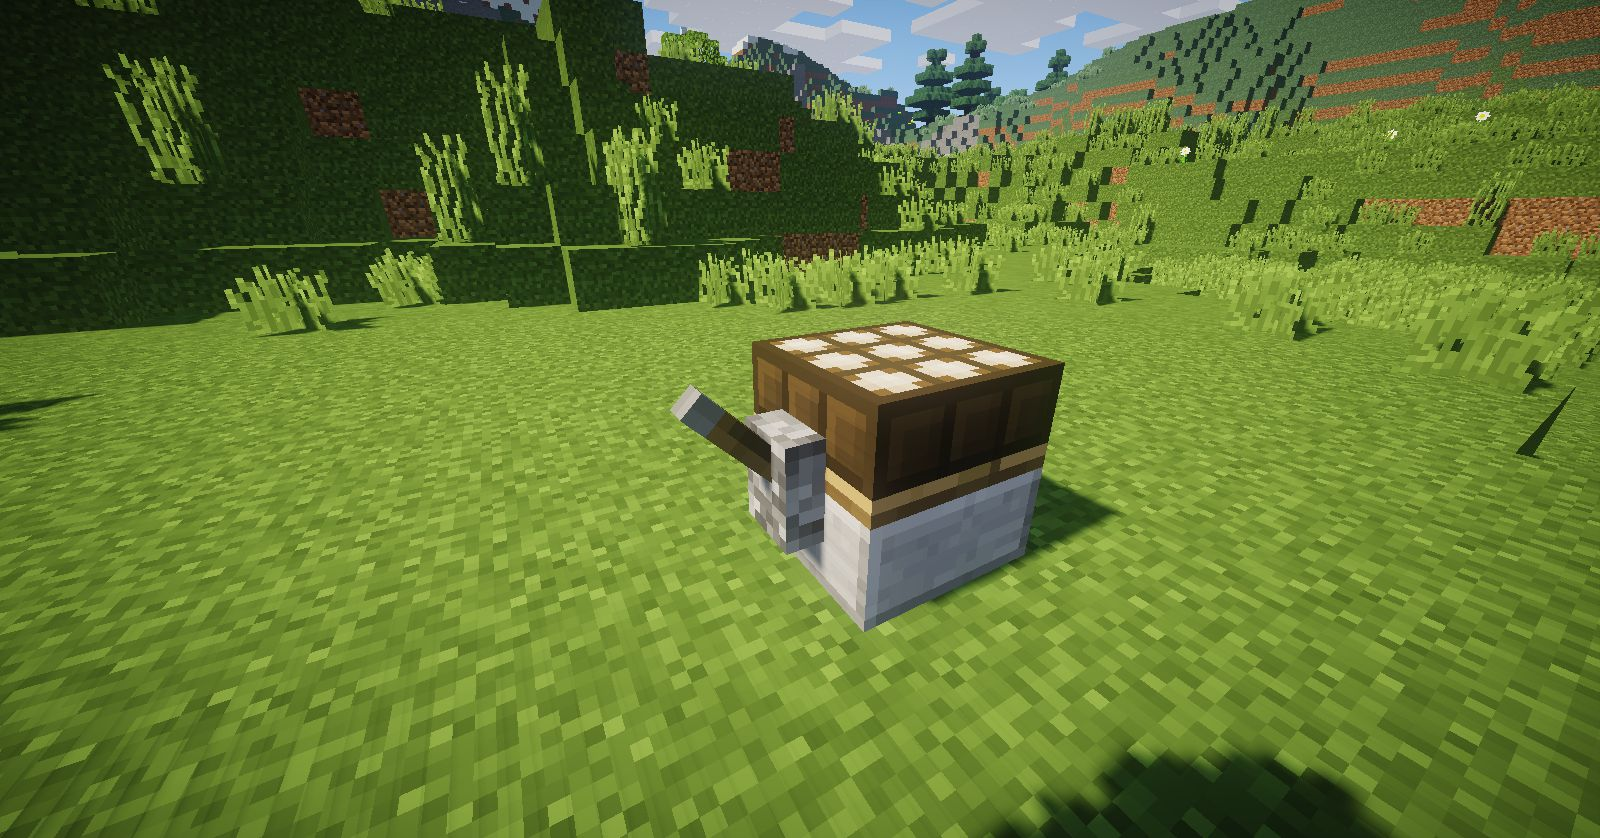 Torchmaster mod for Minecraft (8)